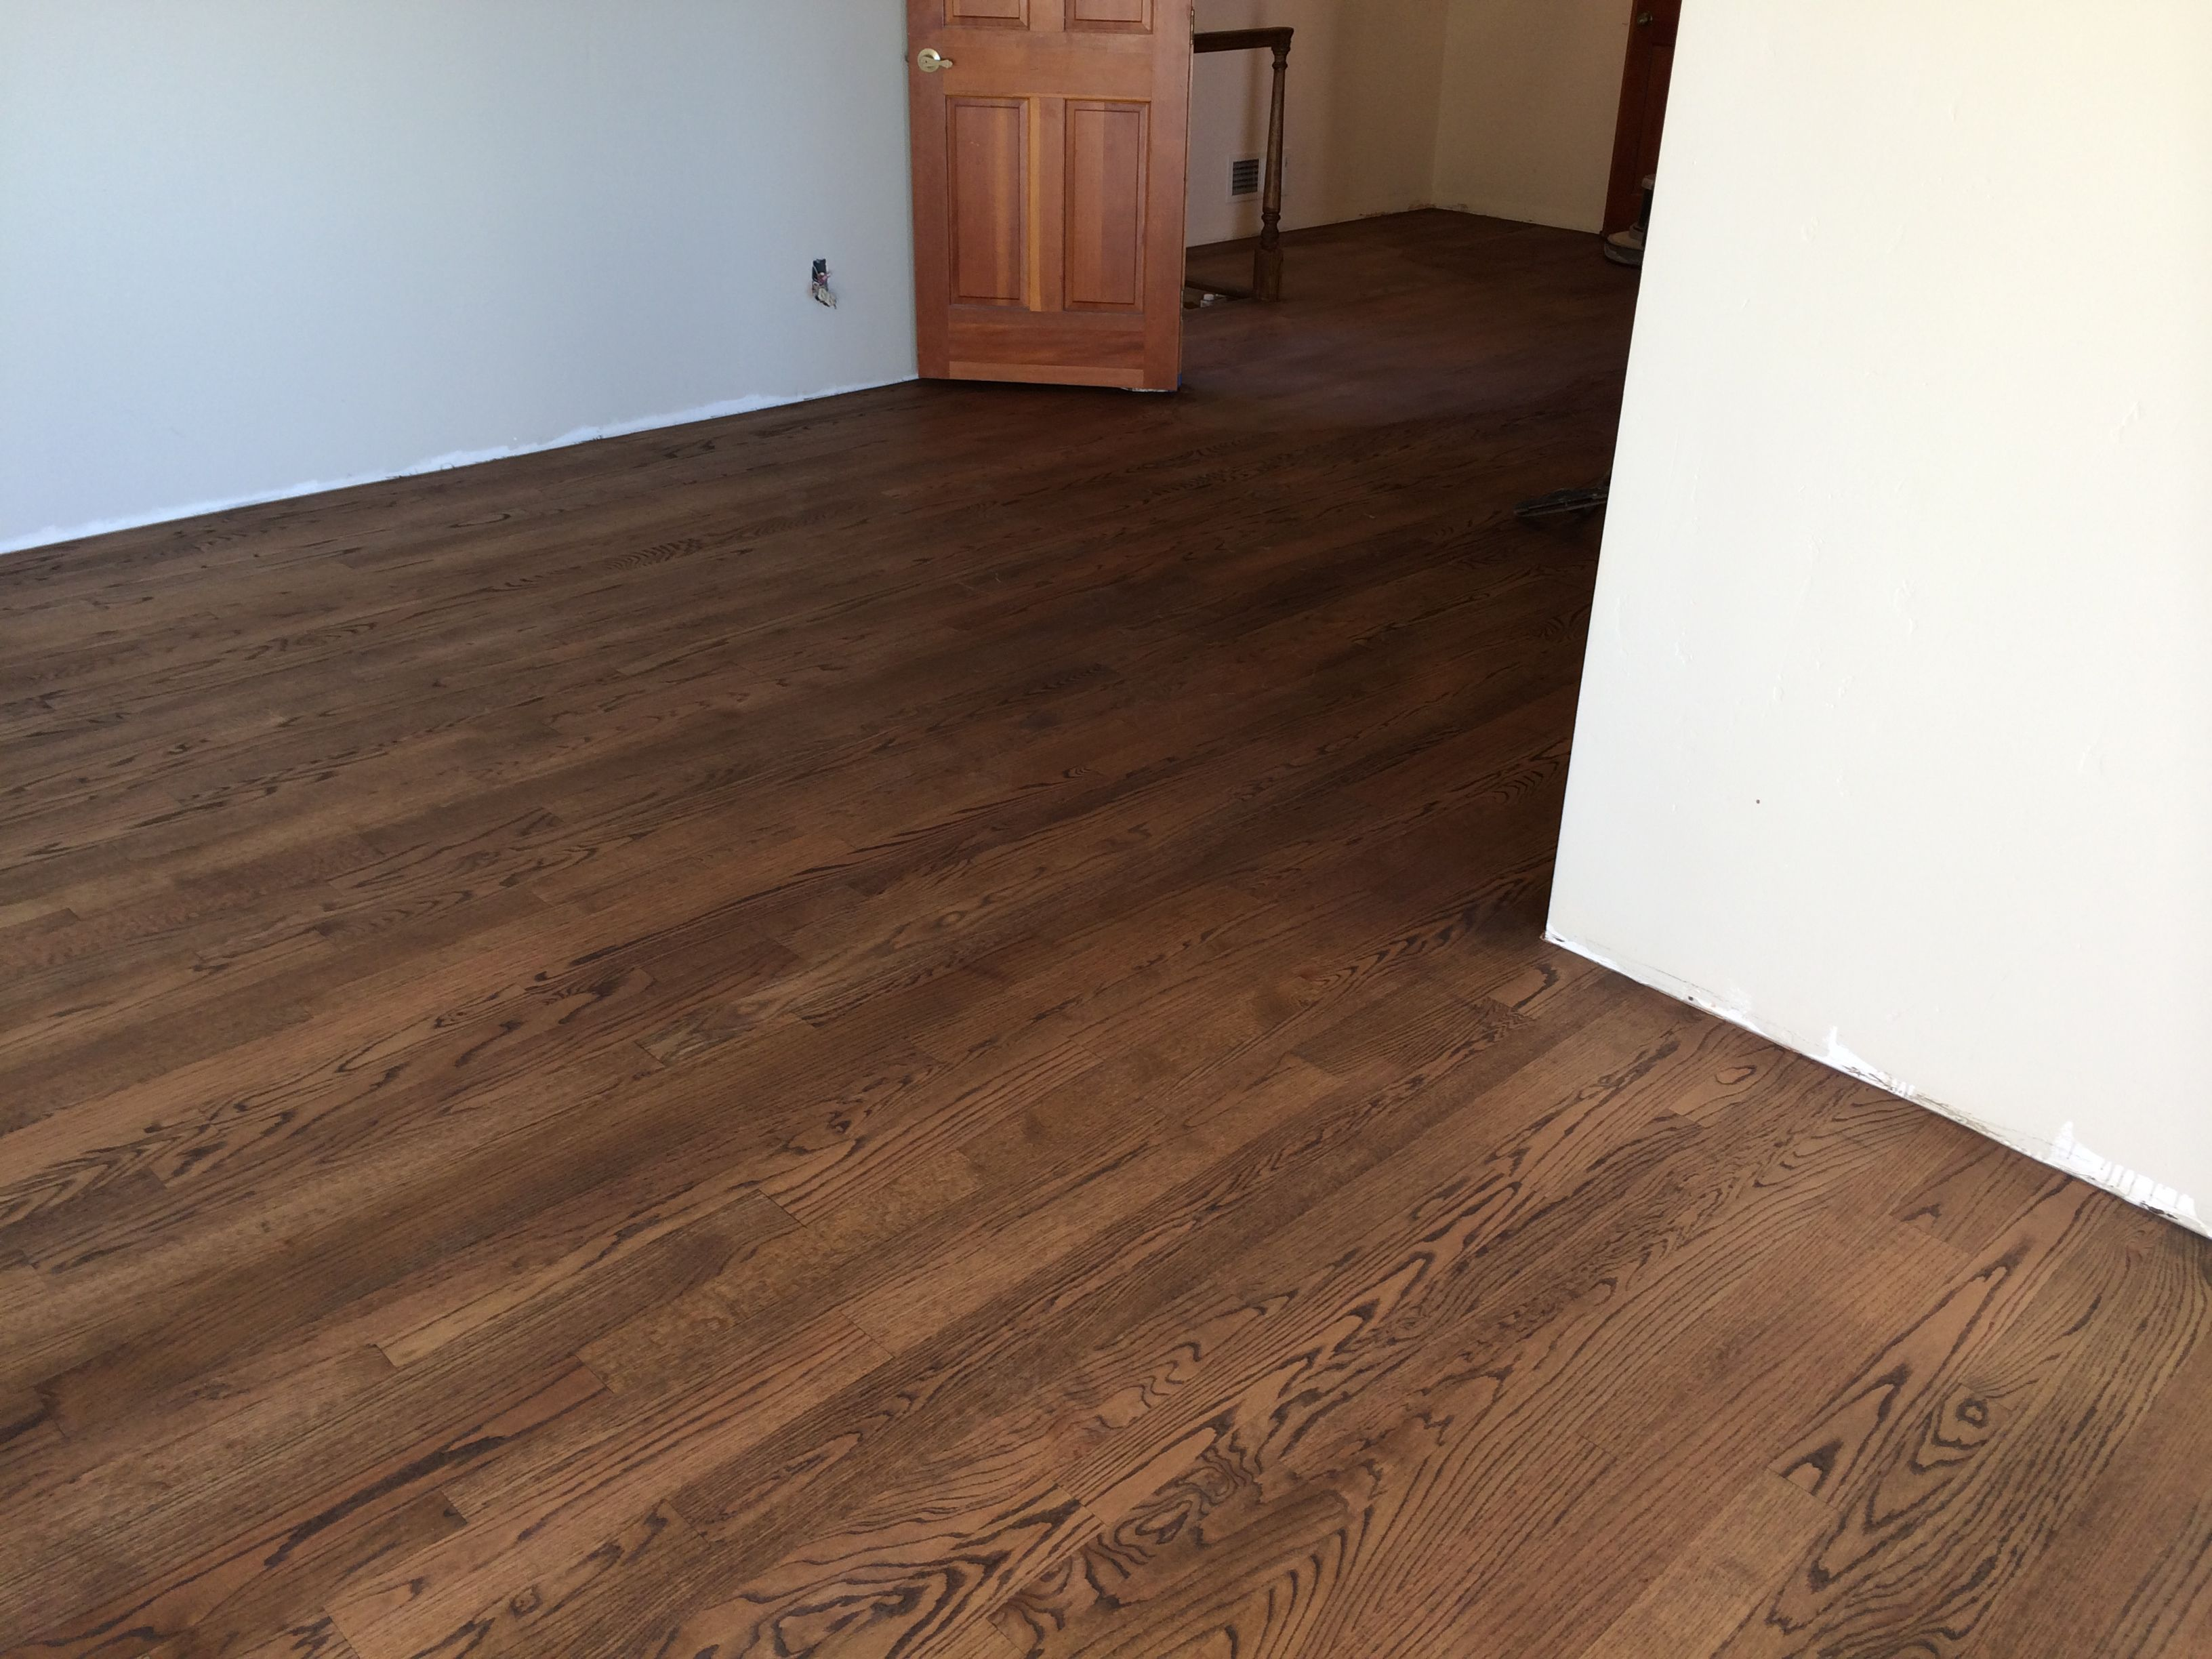 Sand Finish Dark Walnut 3 4 X 2 1 4 3 4 X 3 1 4 3 4 X 4 Hardwood Floors Hardwood Flooring